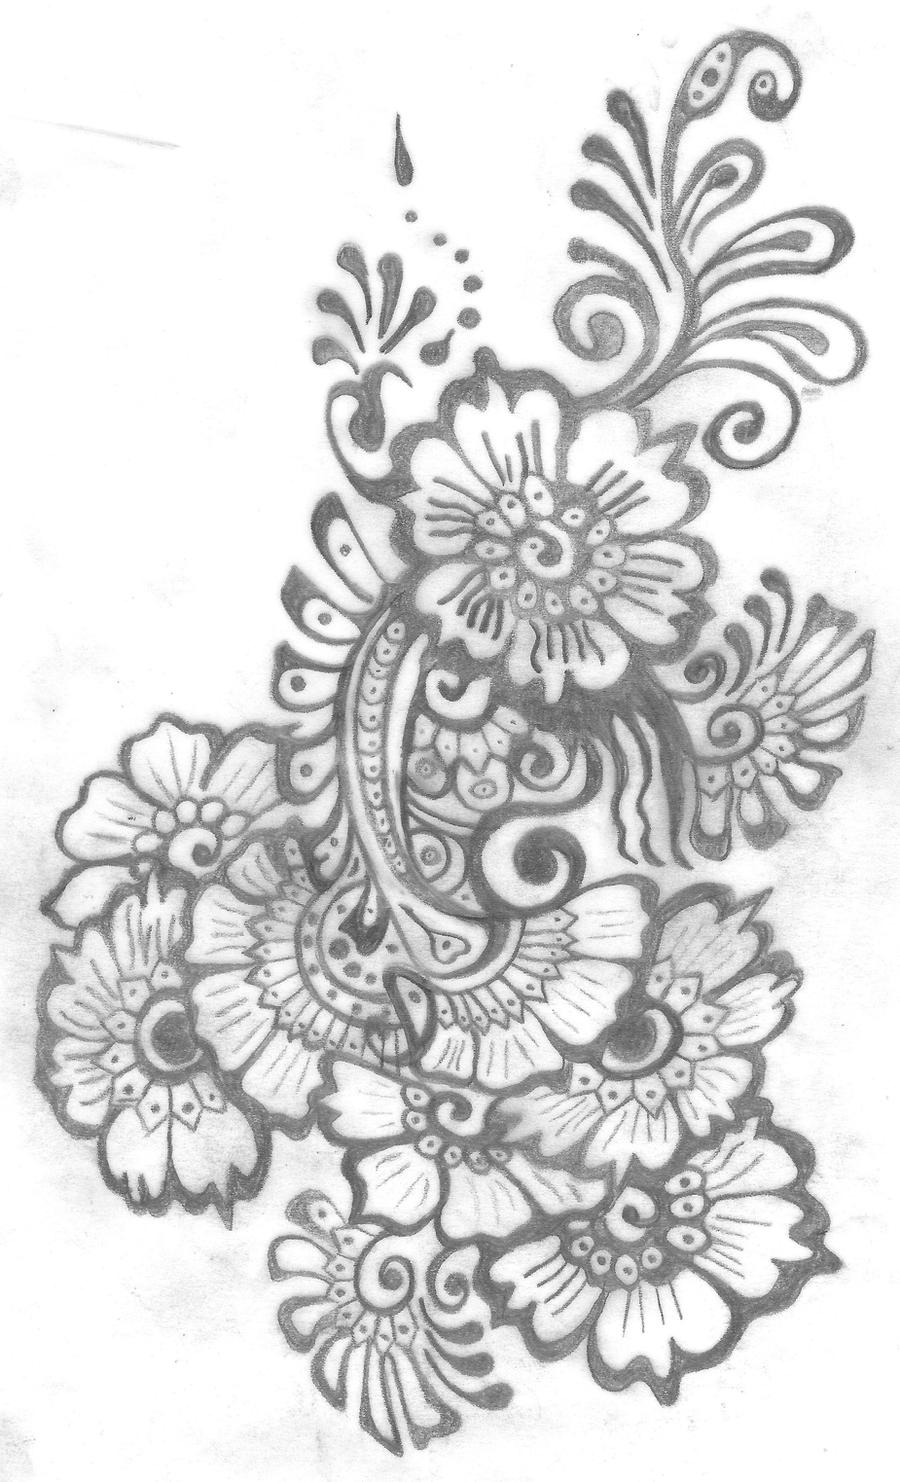 My Mehndi Tattoo Design By ShurumiTattoomi On DeviantArt